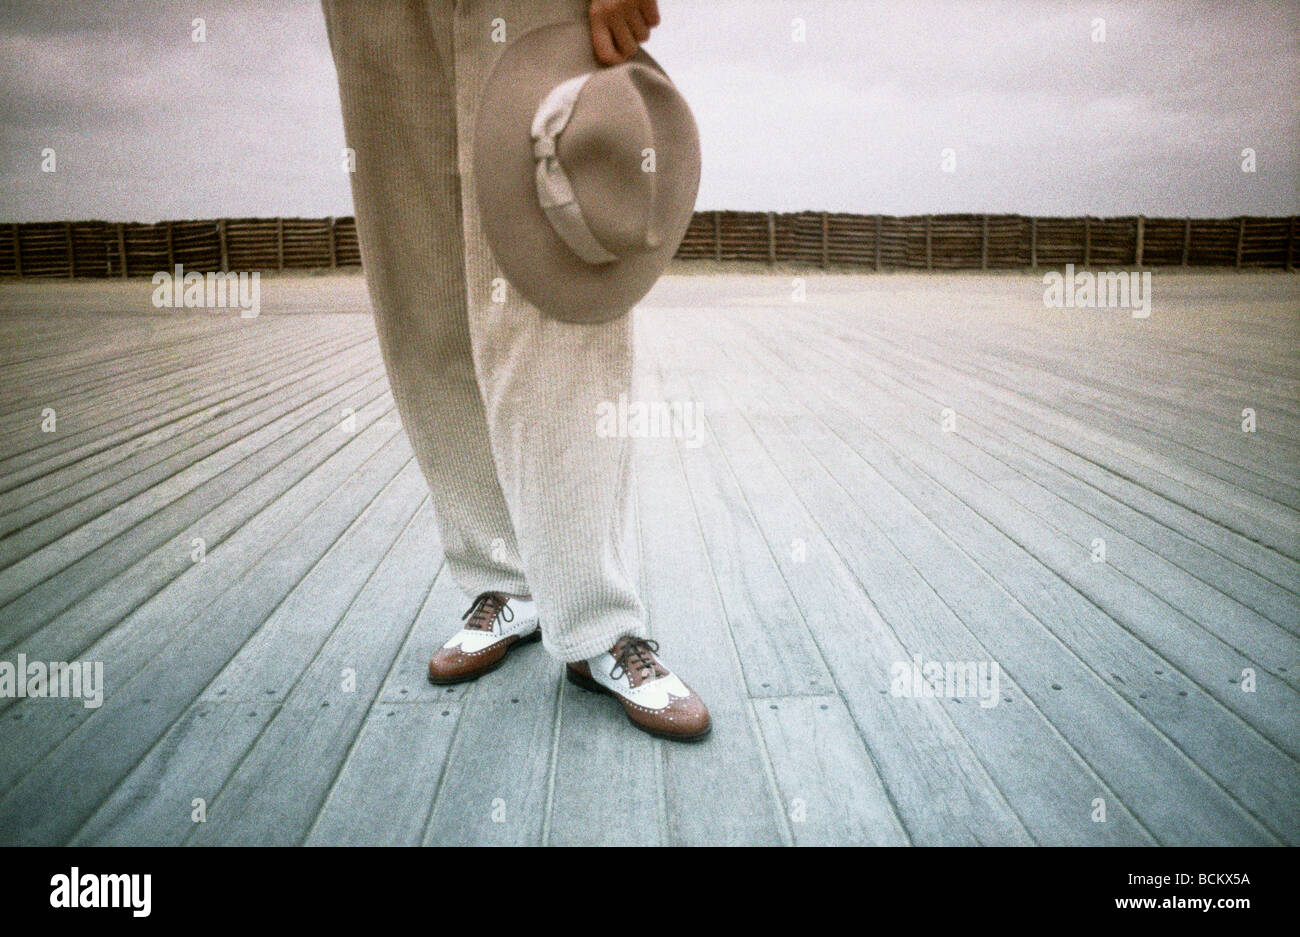 Person standing on wooden planks, holding hat - Stock Image